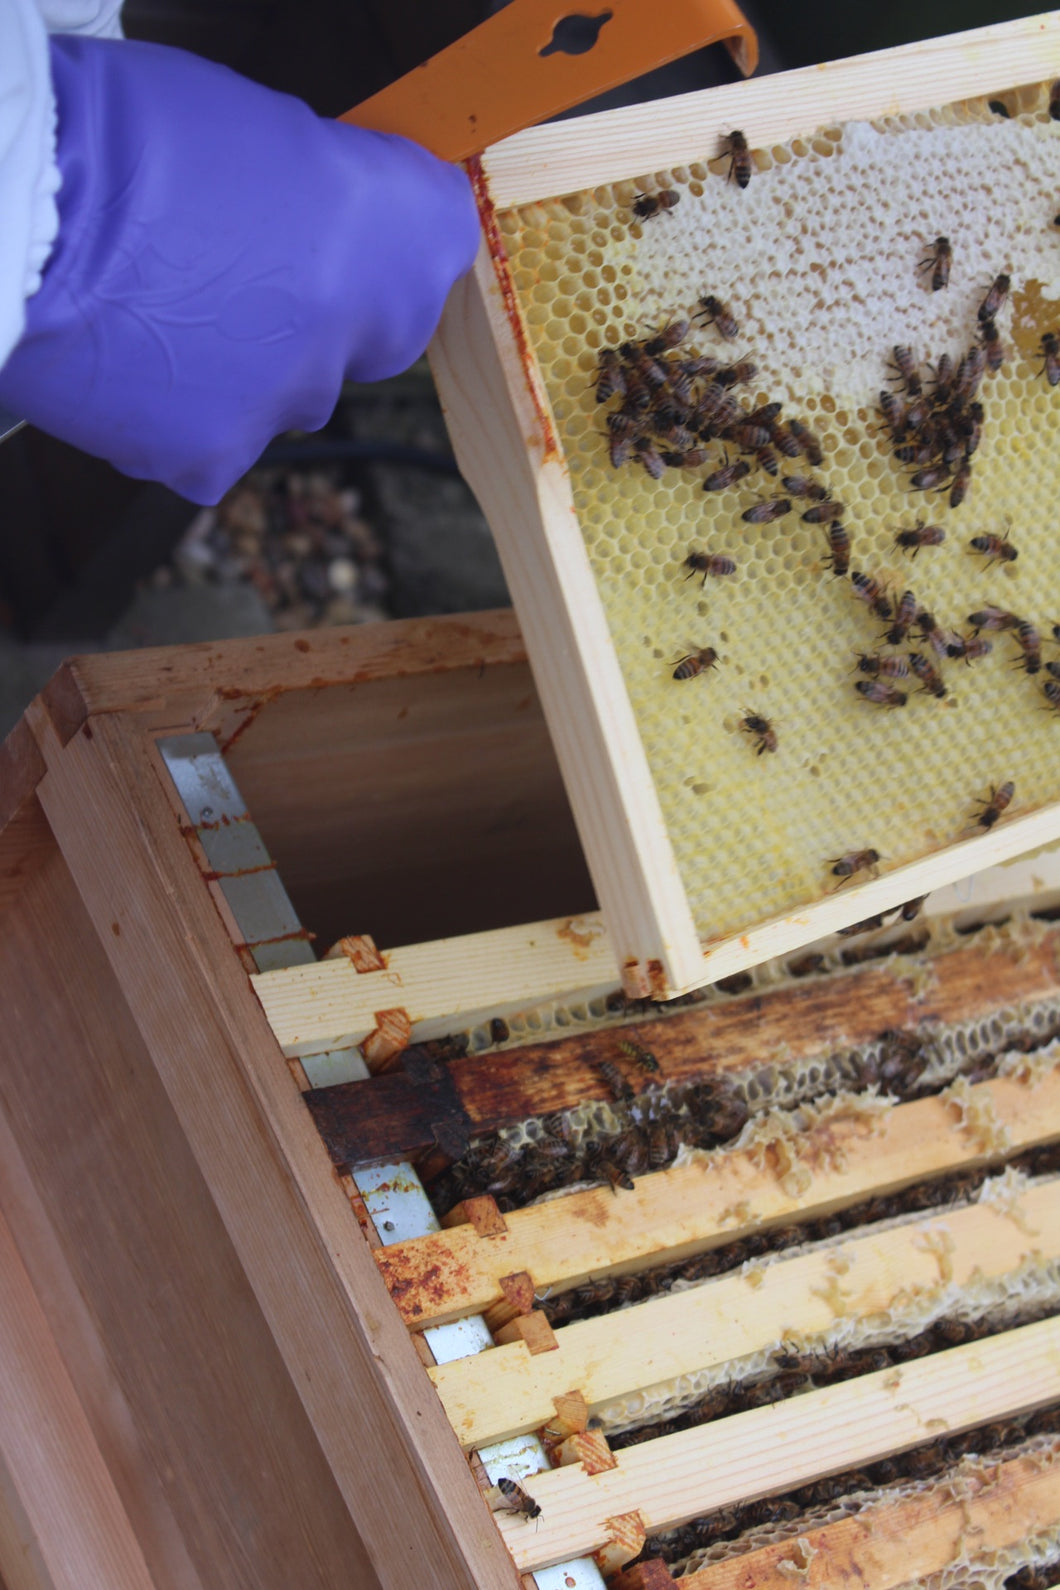 Start A Honey Business 5 x National Beehives With Buckfast Bees